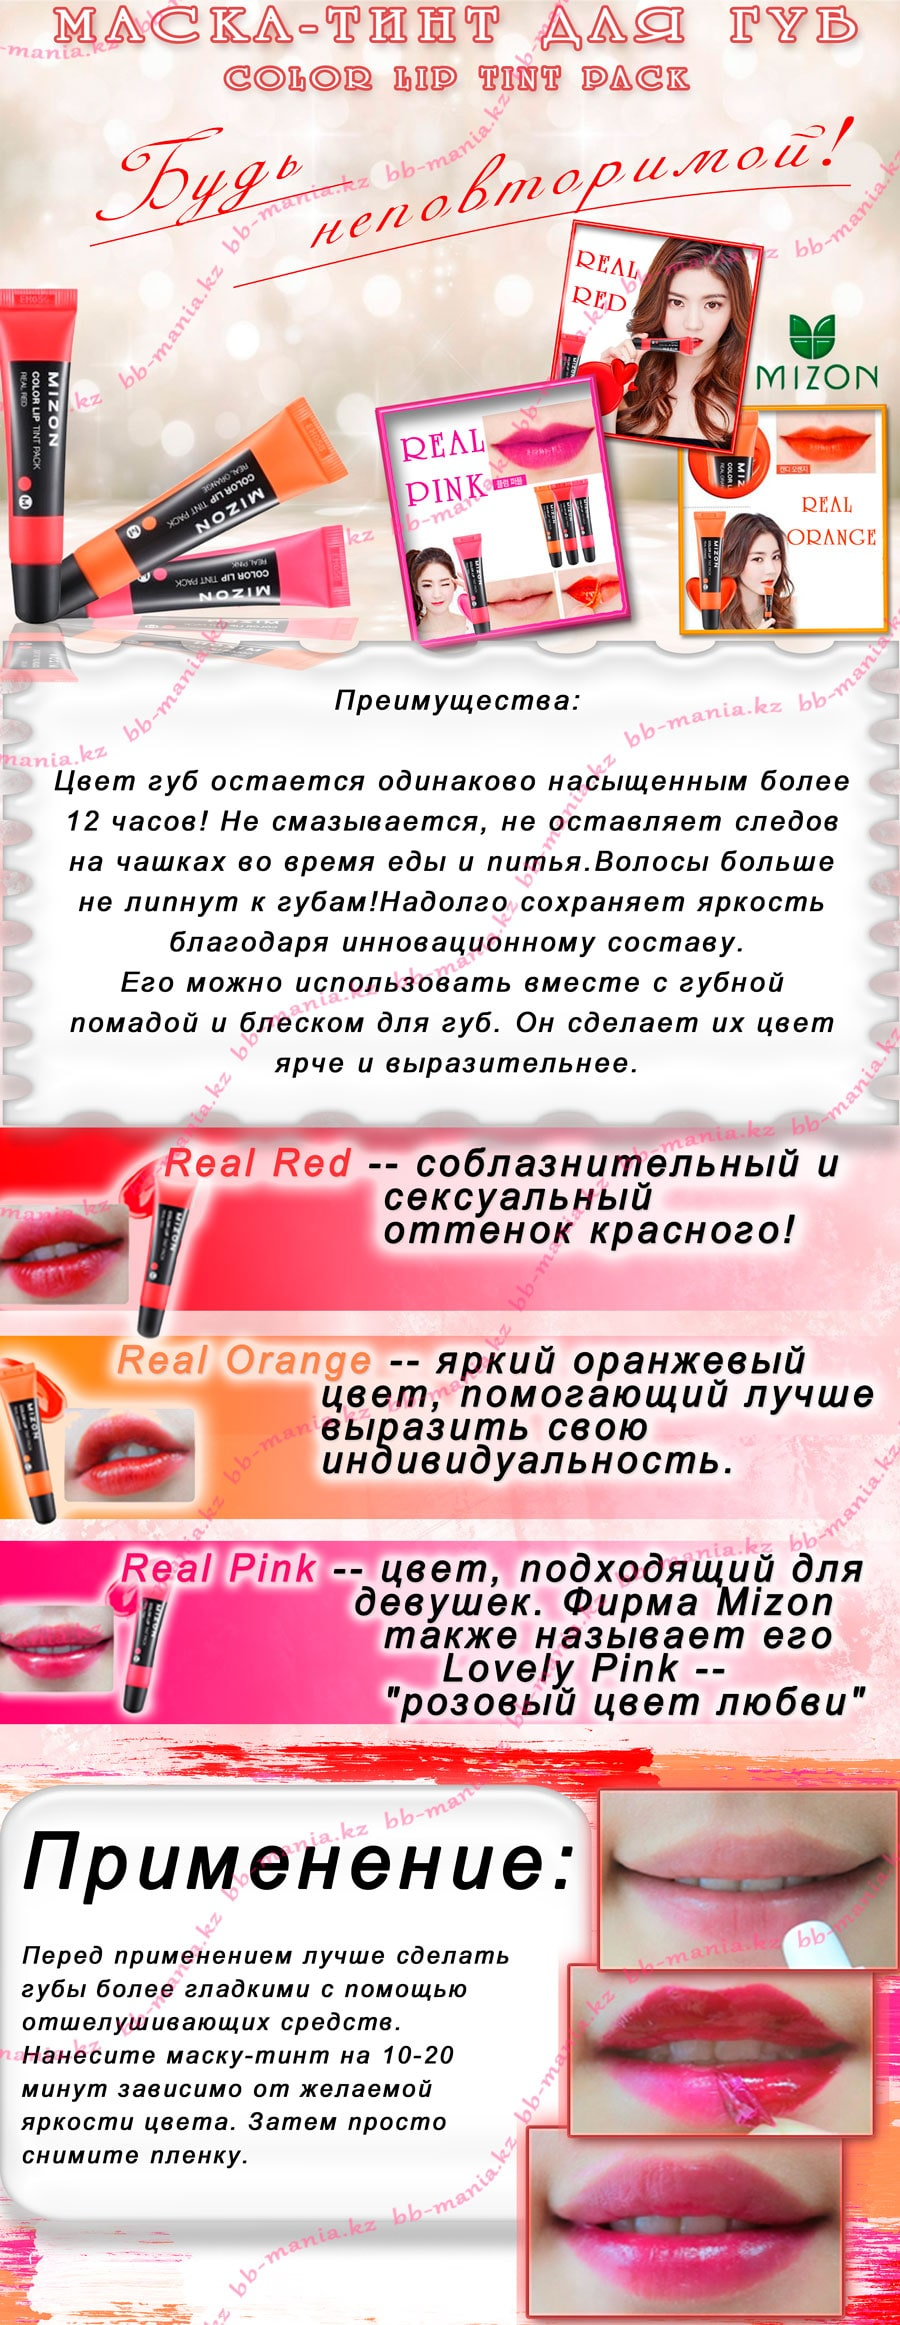 color-lip-tint-pack-min